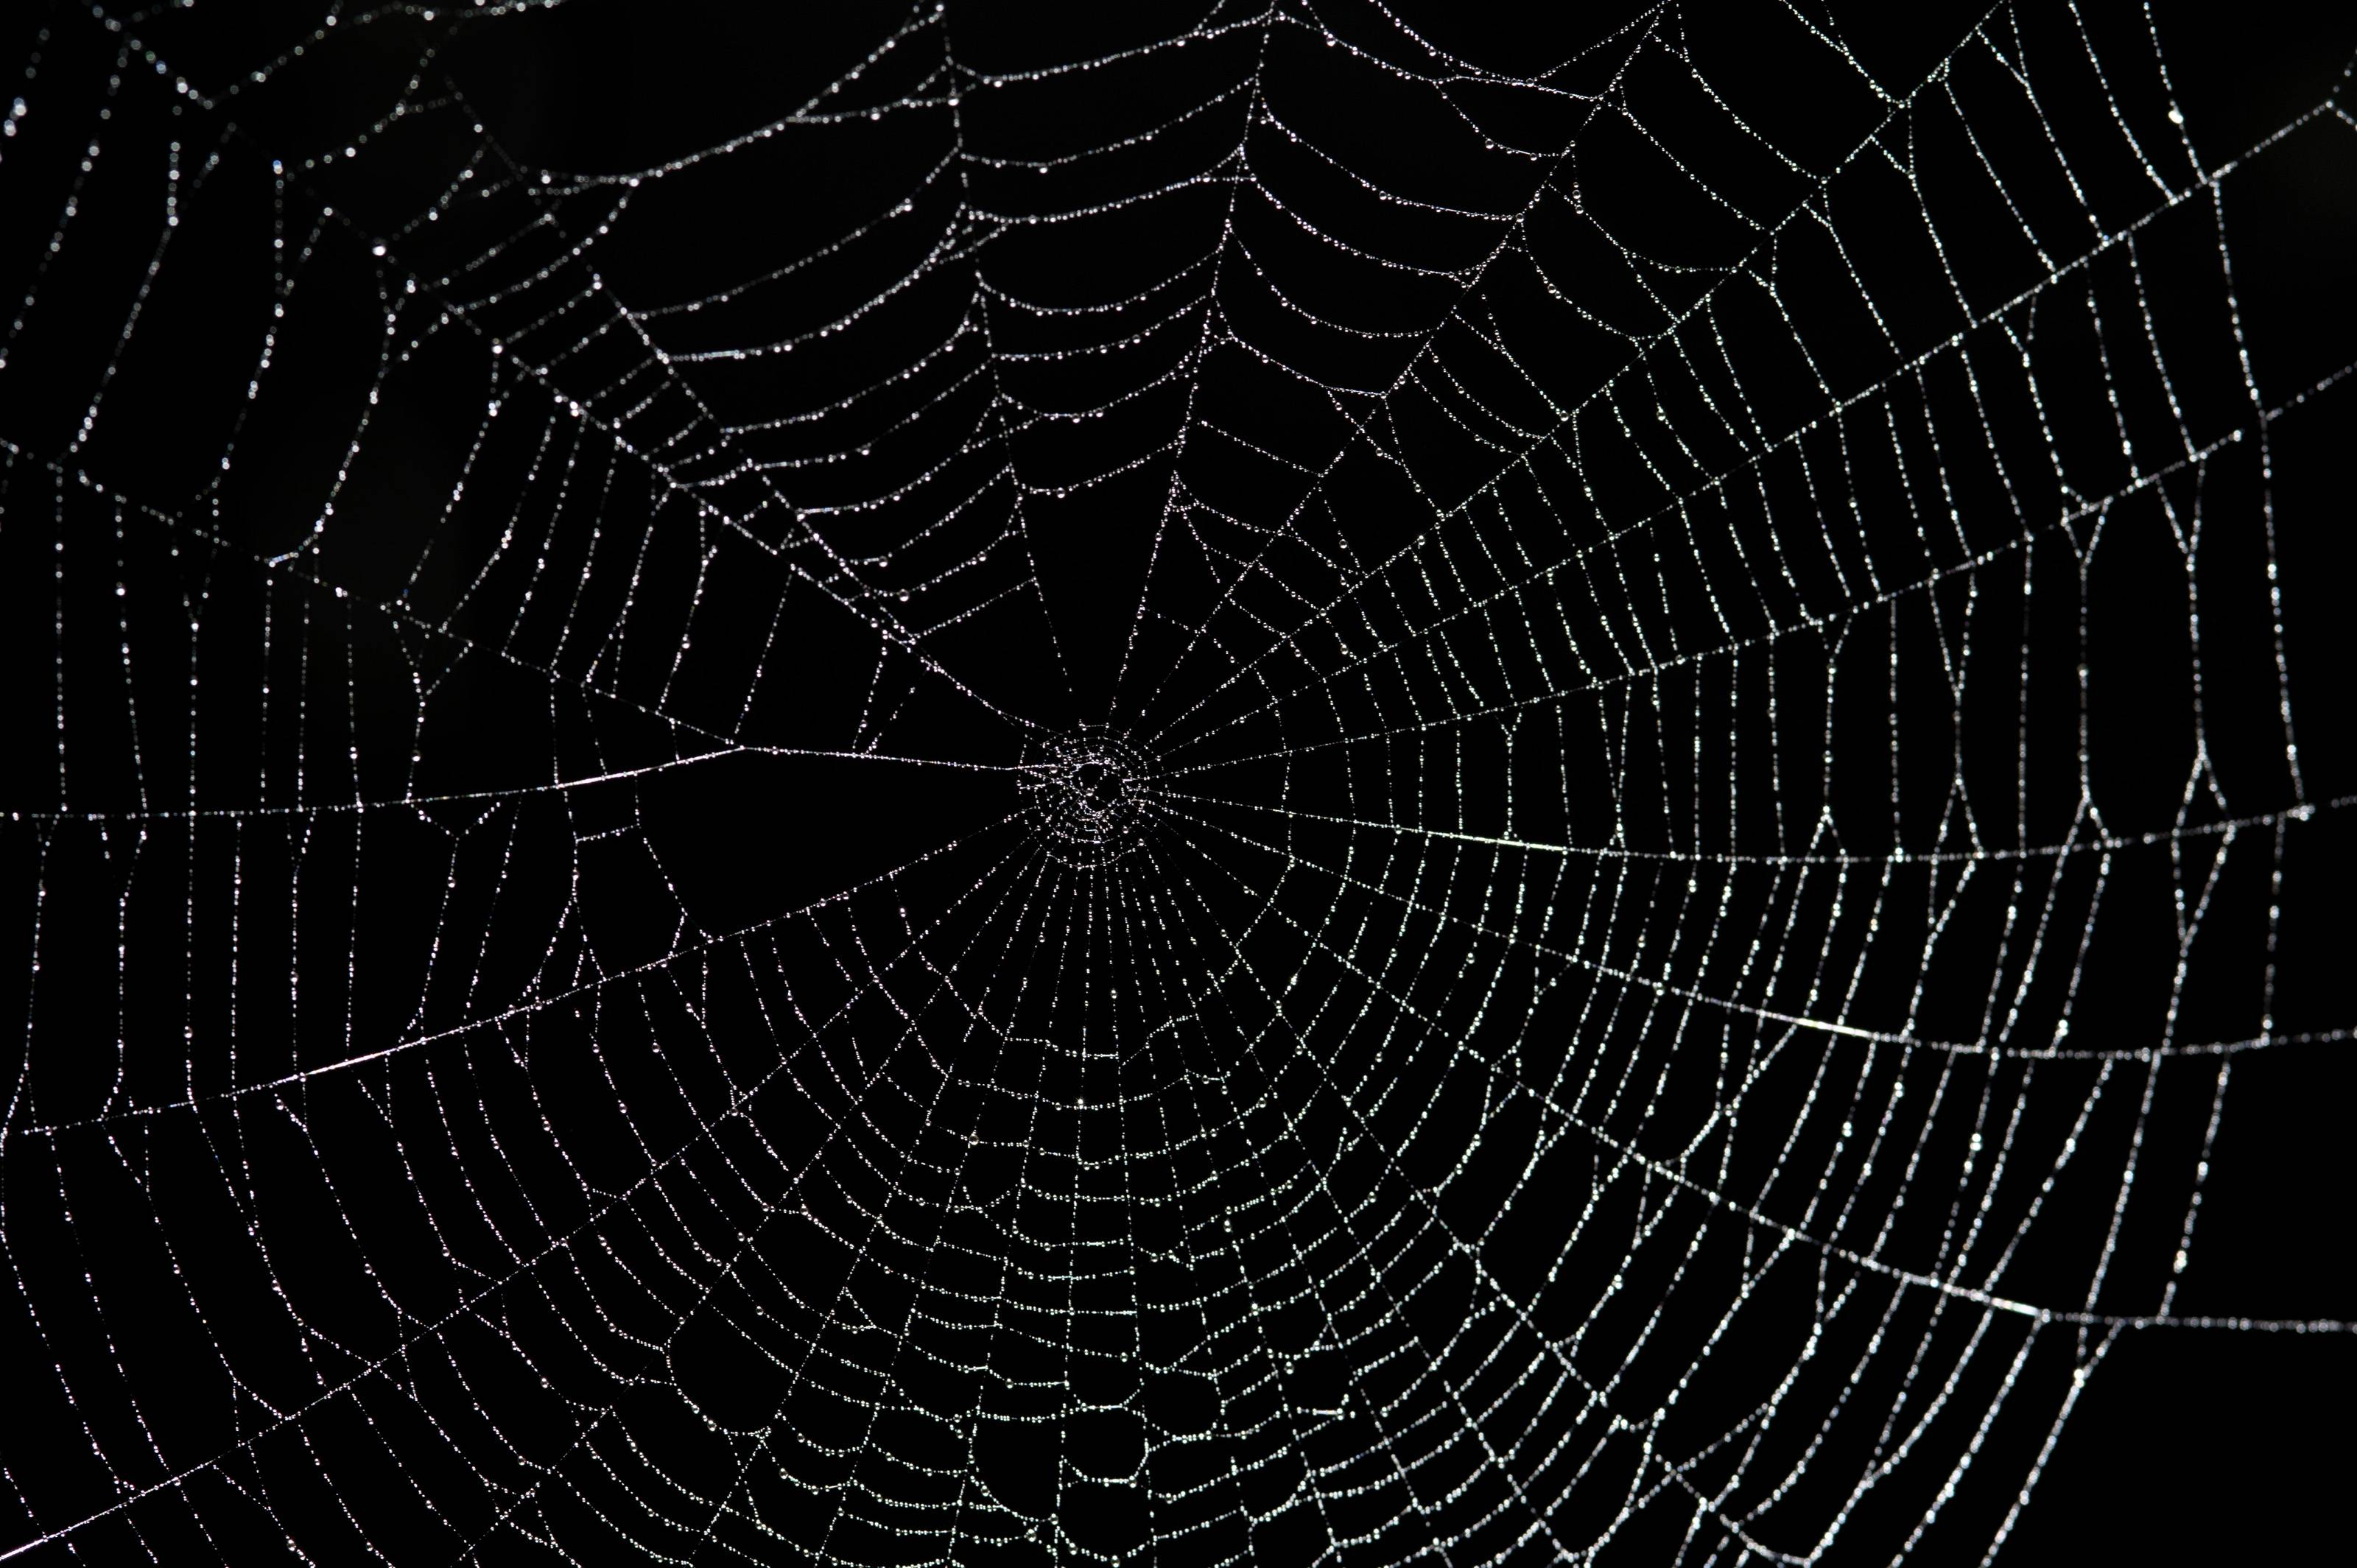 Spiderweb Wallpaper